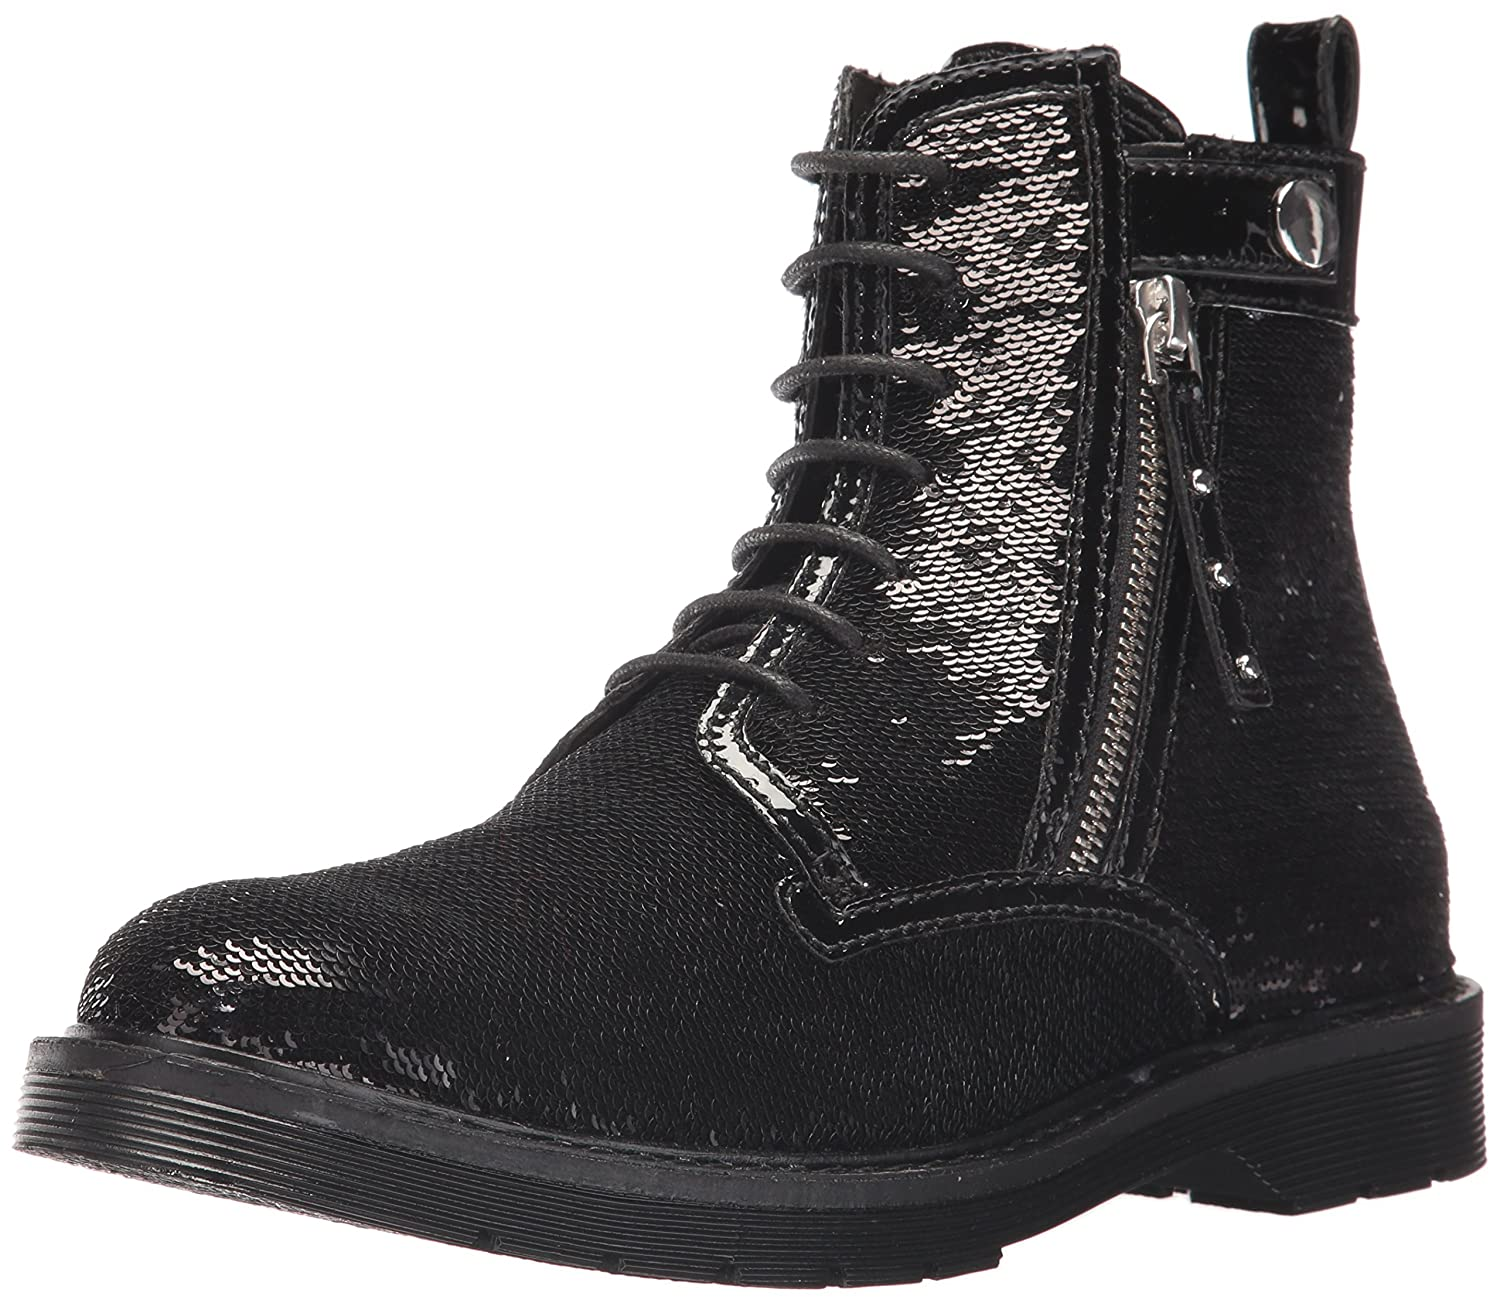 A|X Armani Exchange Women's Sequined Combat Boot B071J37RVF 8 B(M) US|Nero